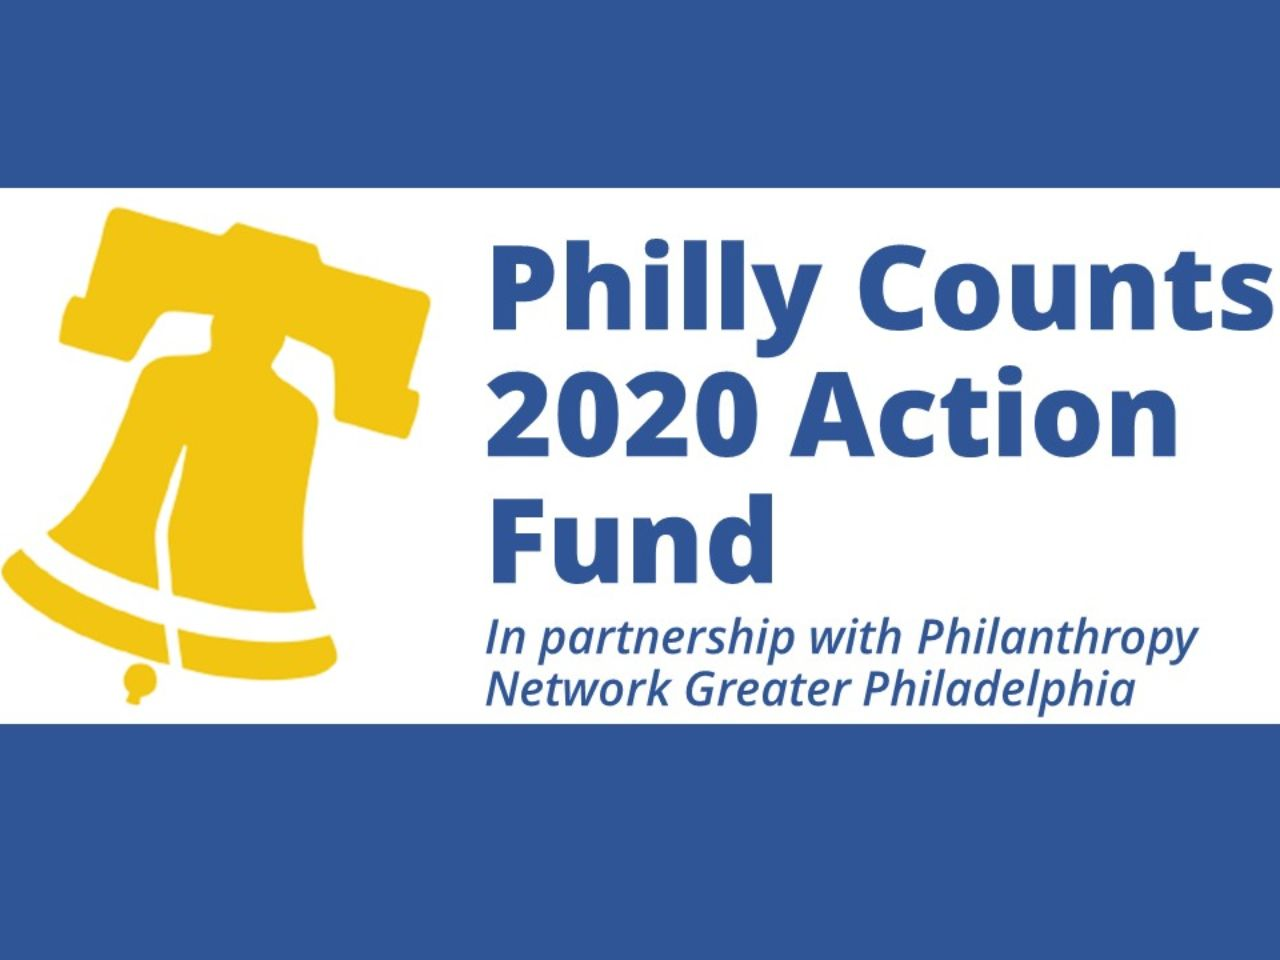 Philly Counts 2020 Action Fund